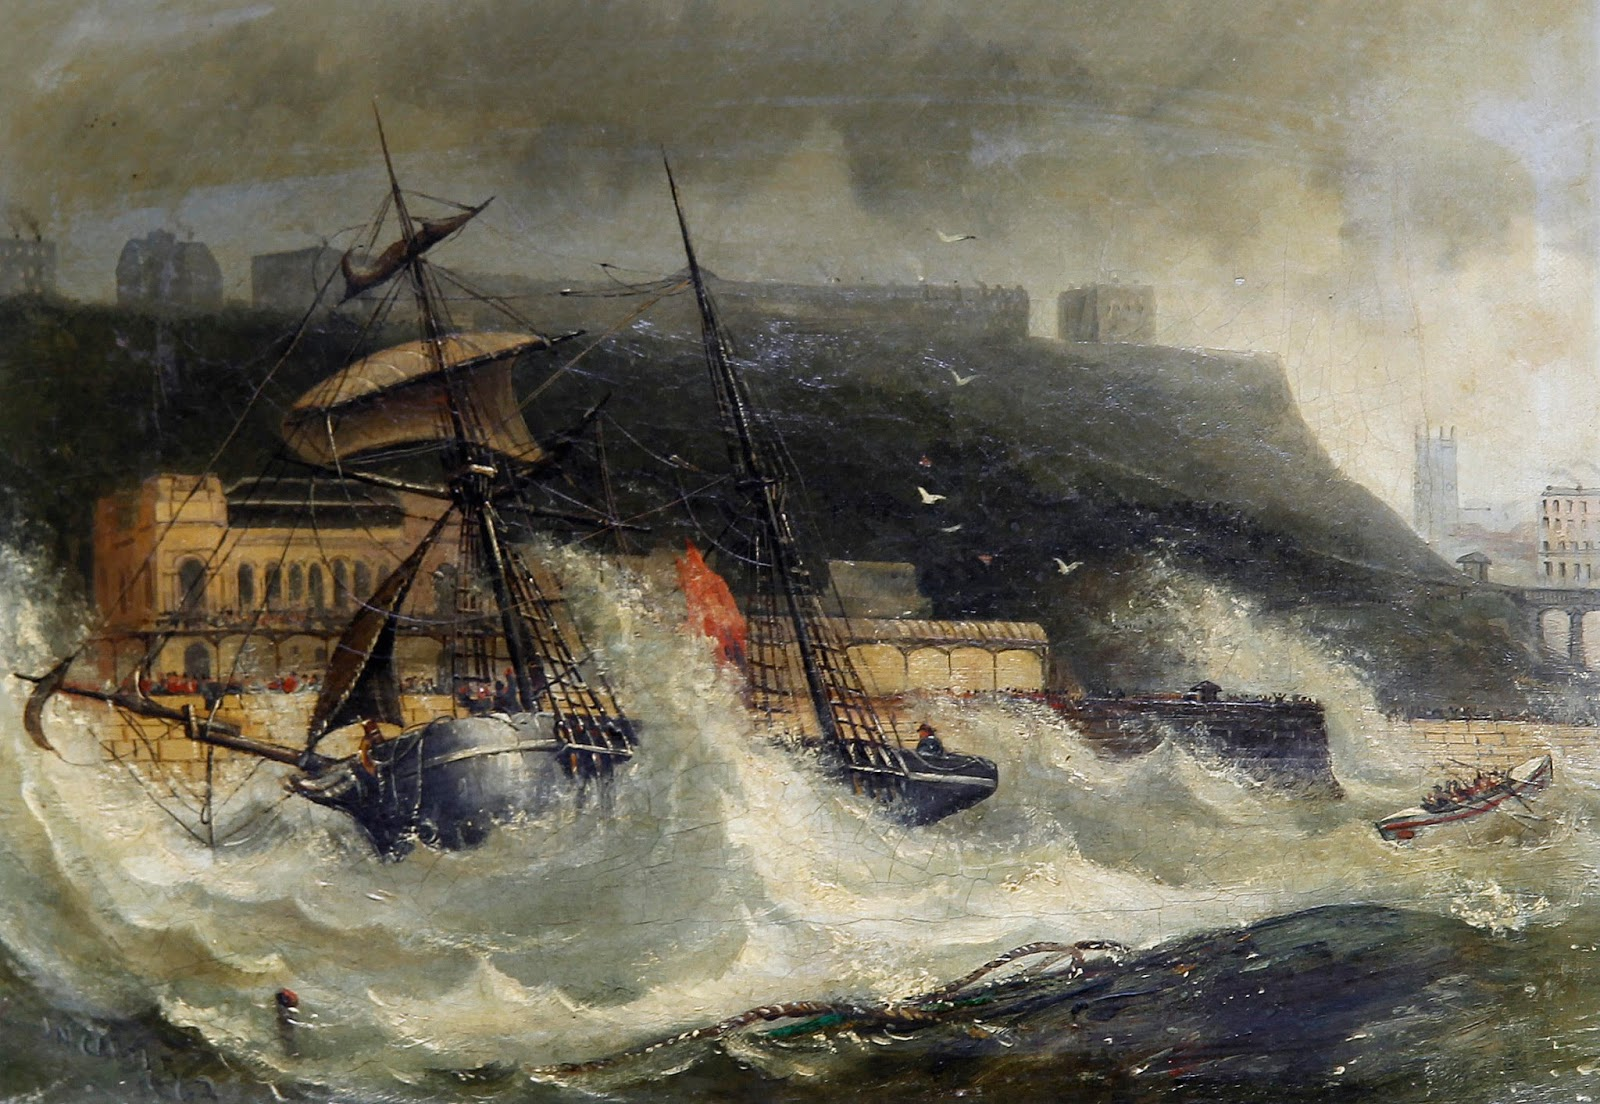 1 Joseph_Newington_Carter_Wreck_of_the_Copeland_South_Sheilds_Nov_2_1861_at_Scarboro_Spa.jpg